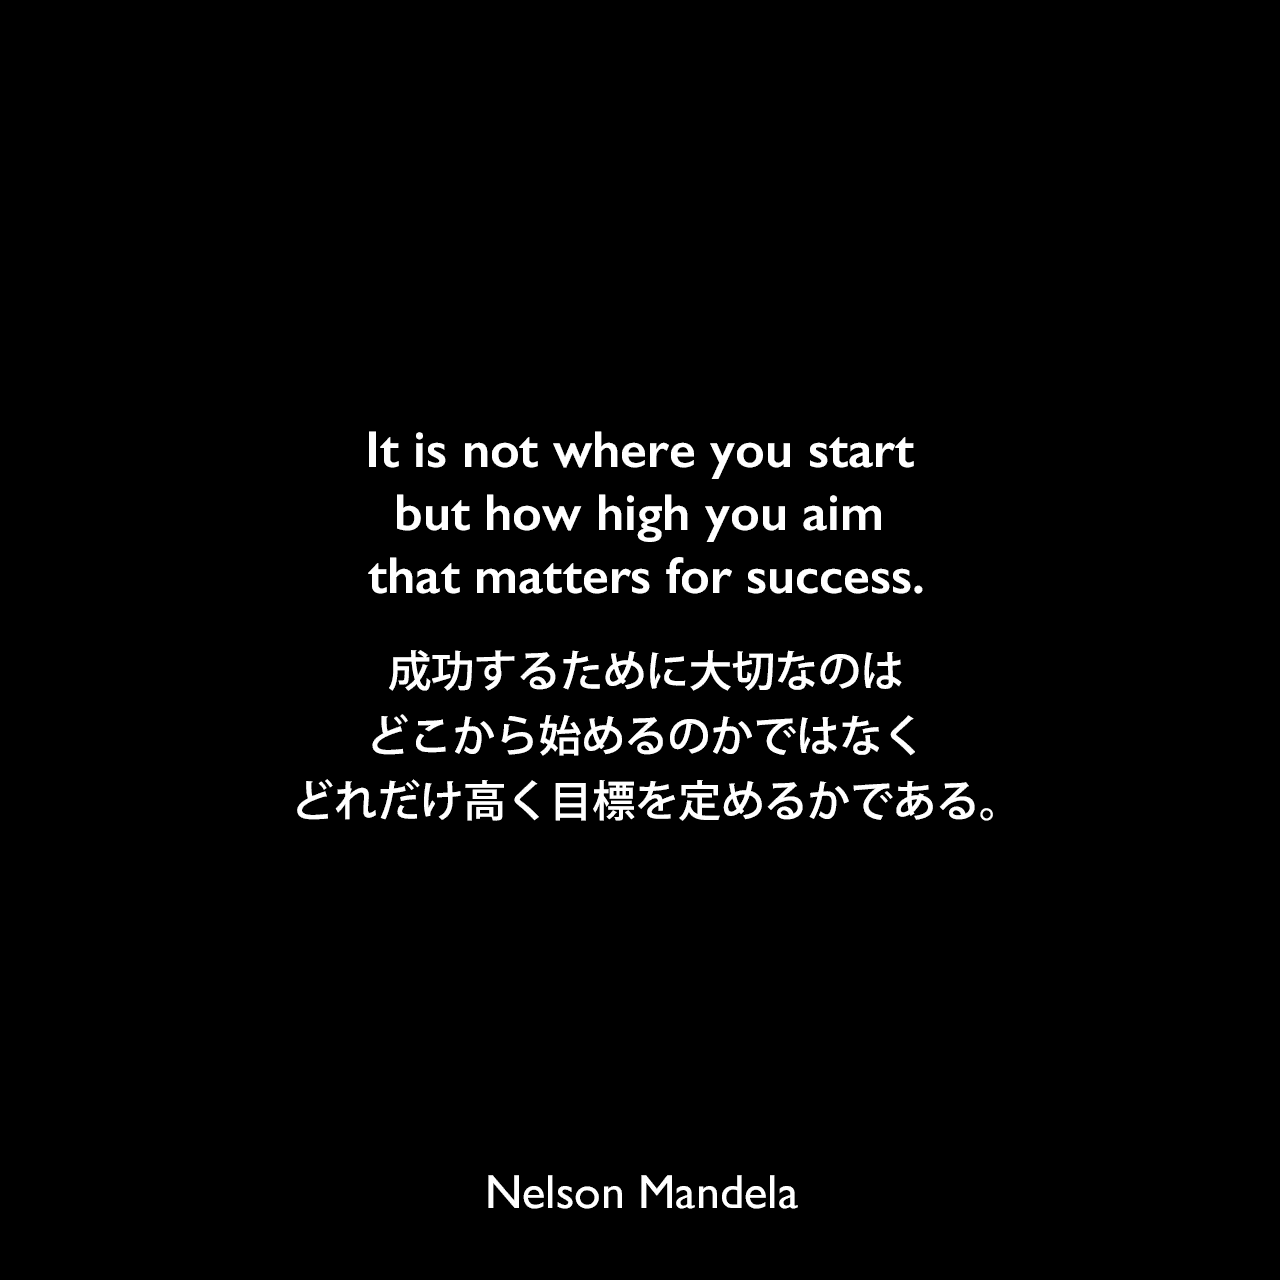 It is not where you start but how high you aim that matters for success.成功するために大切なのは、どこから始めるのかではなく、どれだけ高く目標を定めるかである。